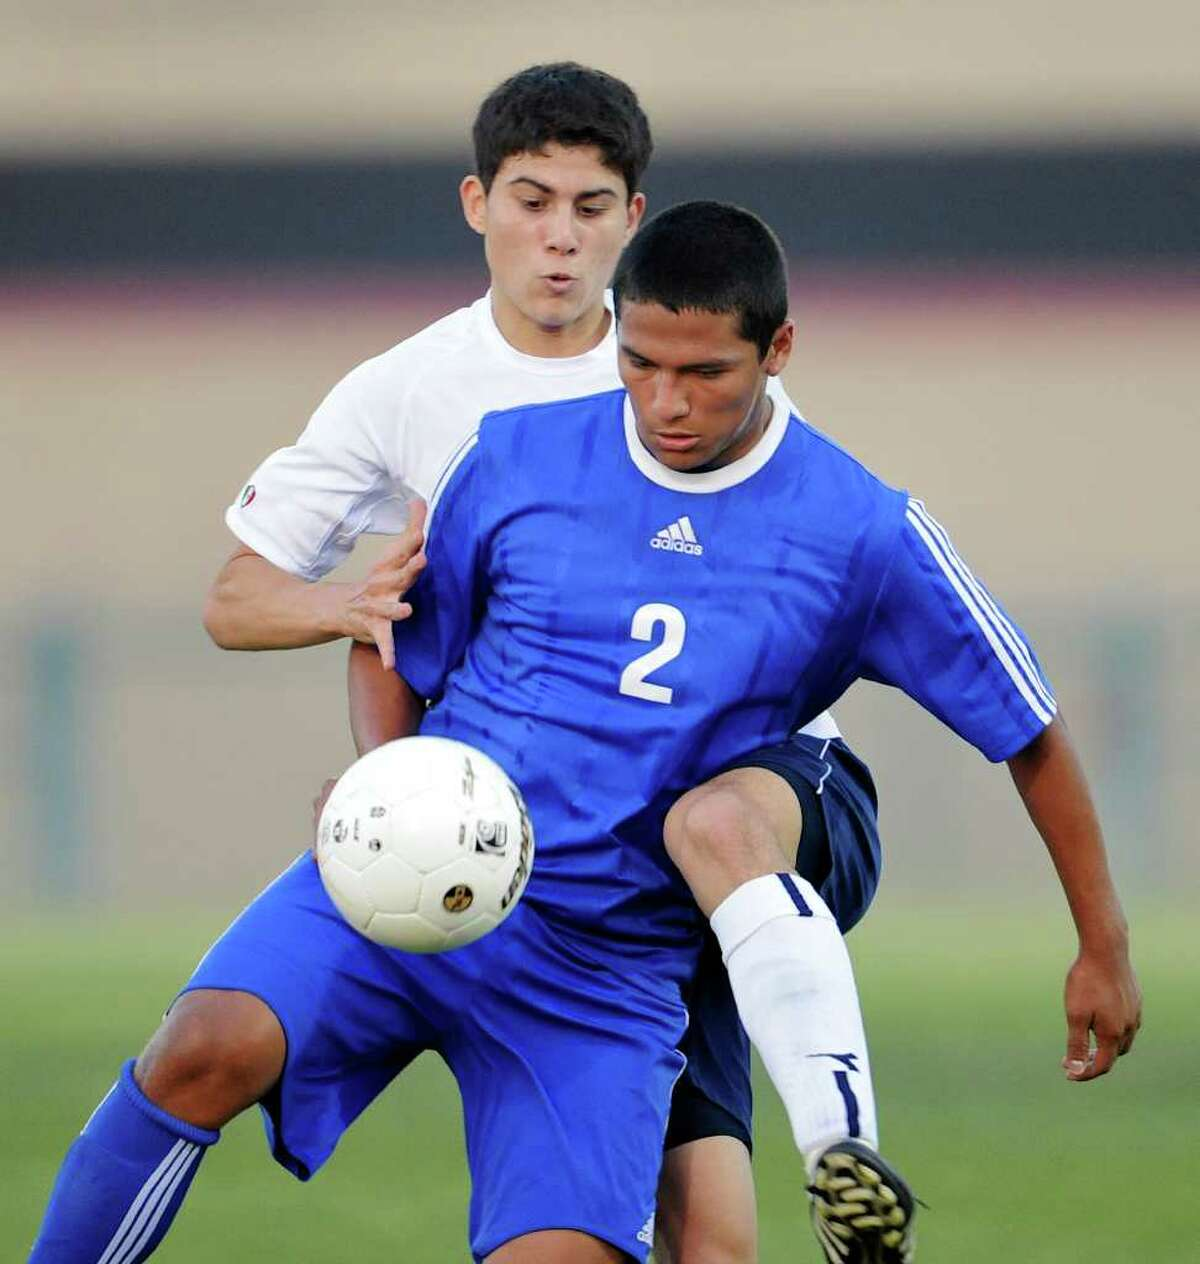 New Braunfels' Christian Cantu (2) and Johnson's Alex Sierra (3) get tangled up as they battle for the ball during a bidistrict playoff match between the Johnson Jaguars and the New Braunfels Unicorns at the Blossom Athletic Center West Soccer Field on Monday, April 2, 2012.